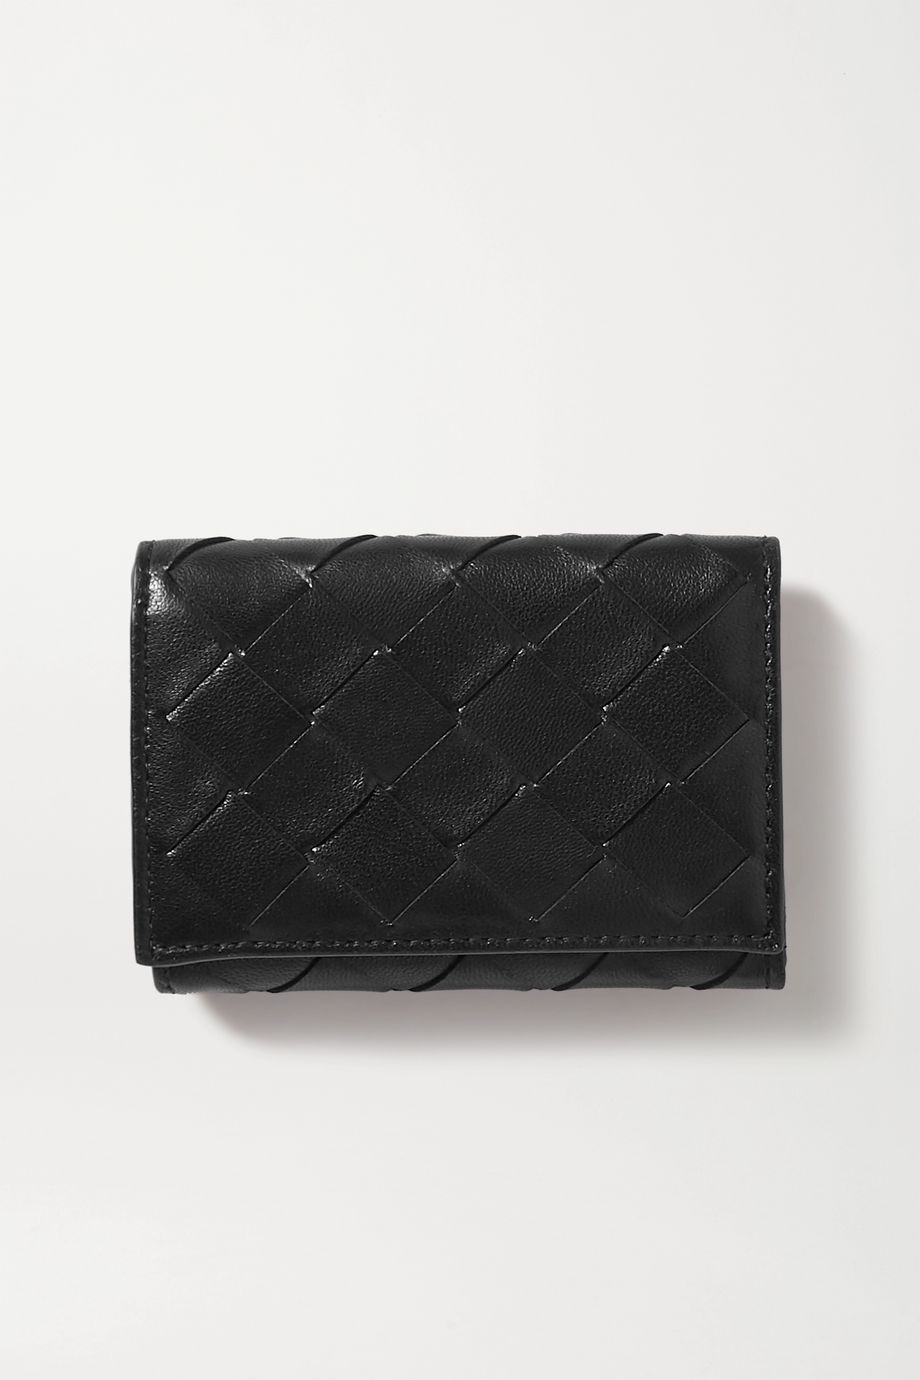 Bottega Veneta Intrecciato textured-leather wallet